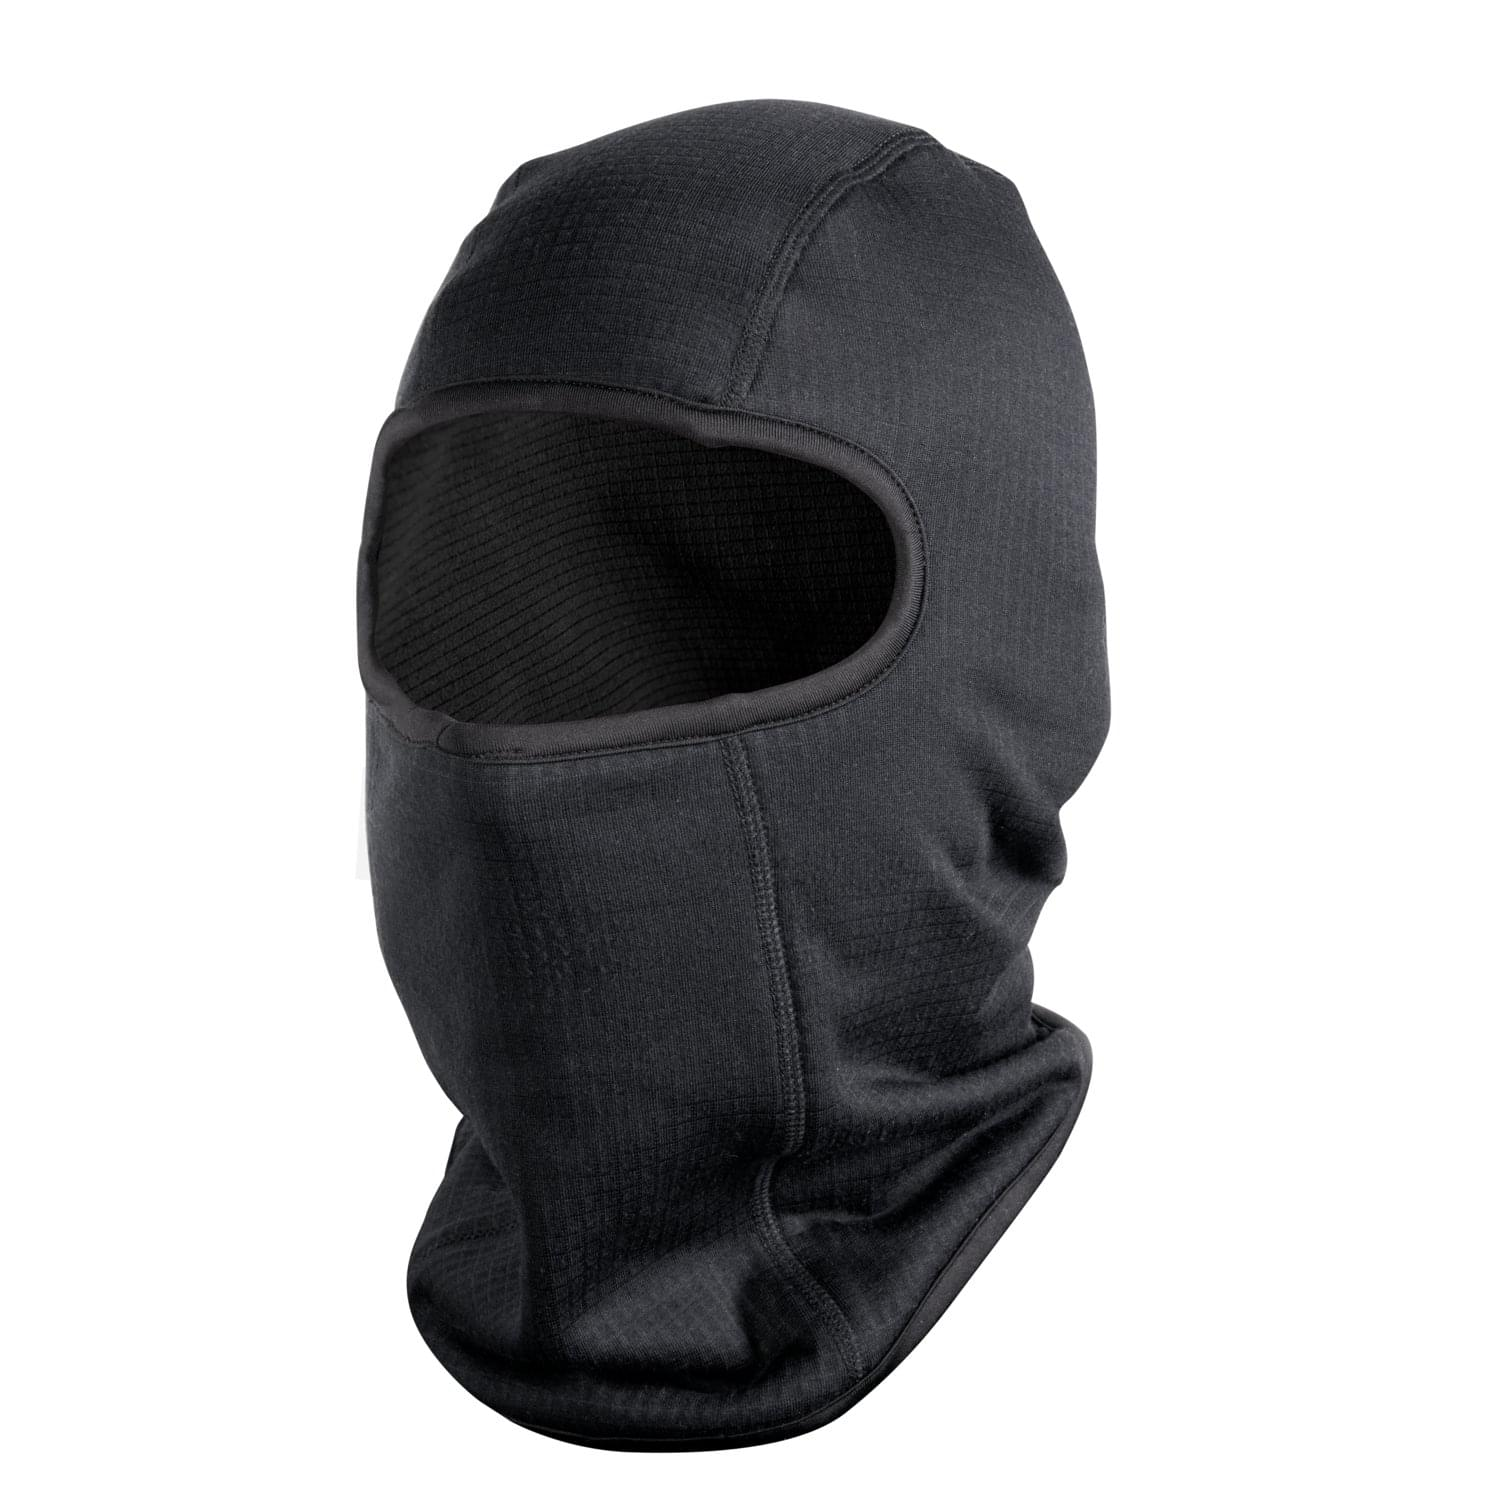 EXTREME COLD WEATHER BALACLAVA - COMFORTDRY® - Black